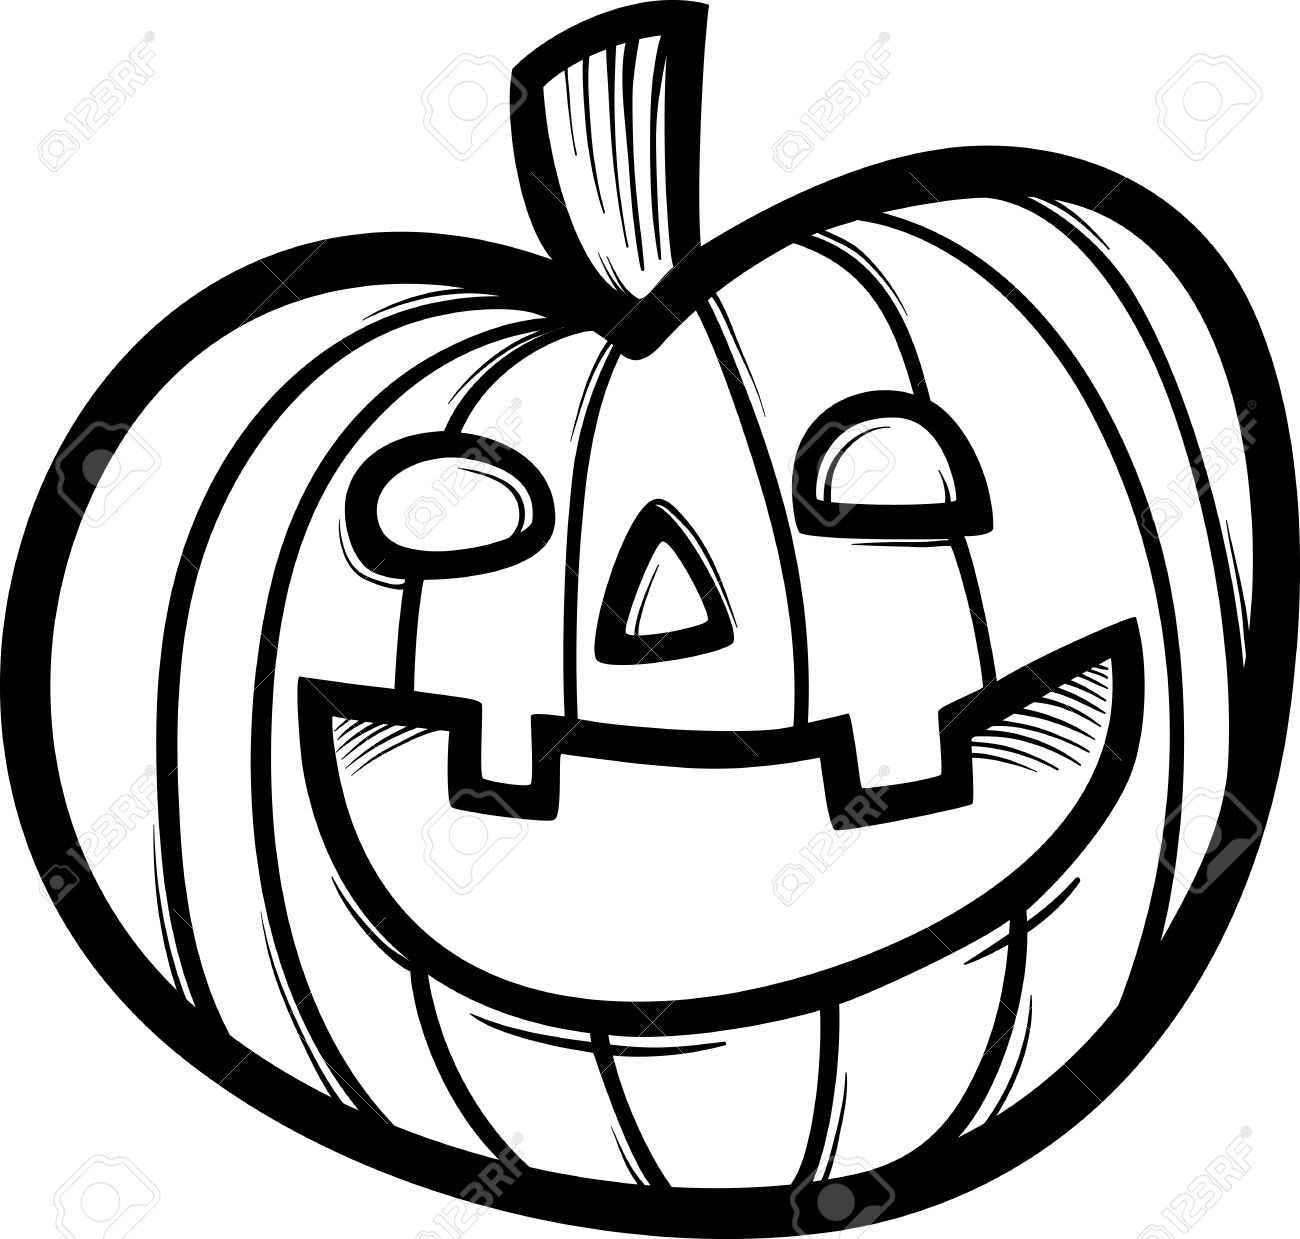 black and white cartoon illustration of spooky halloween pumpkin rh 123rf com pumpkin outline clipart black and white pumpkin clipart black and white free